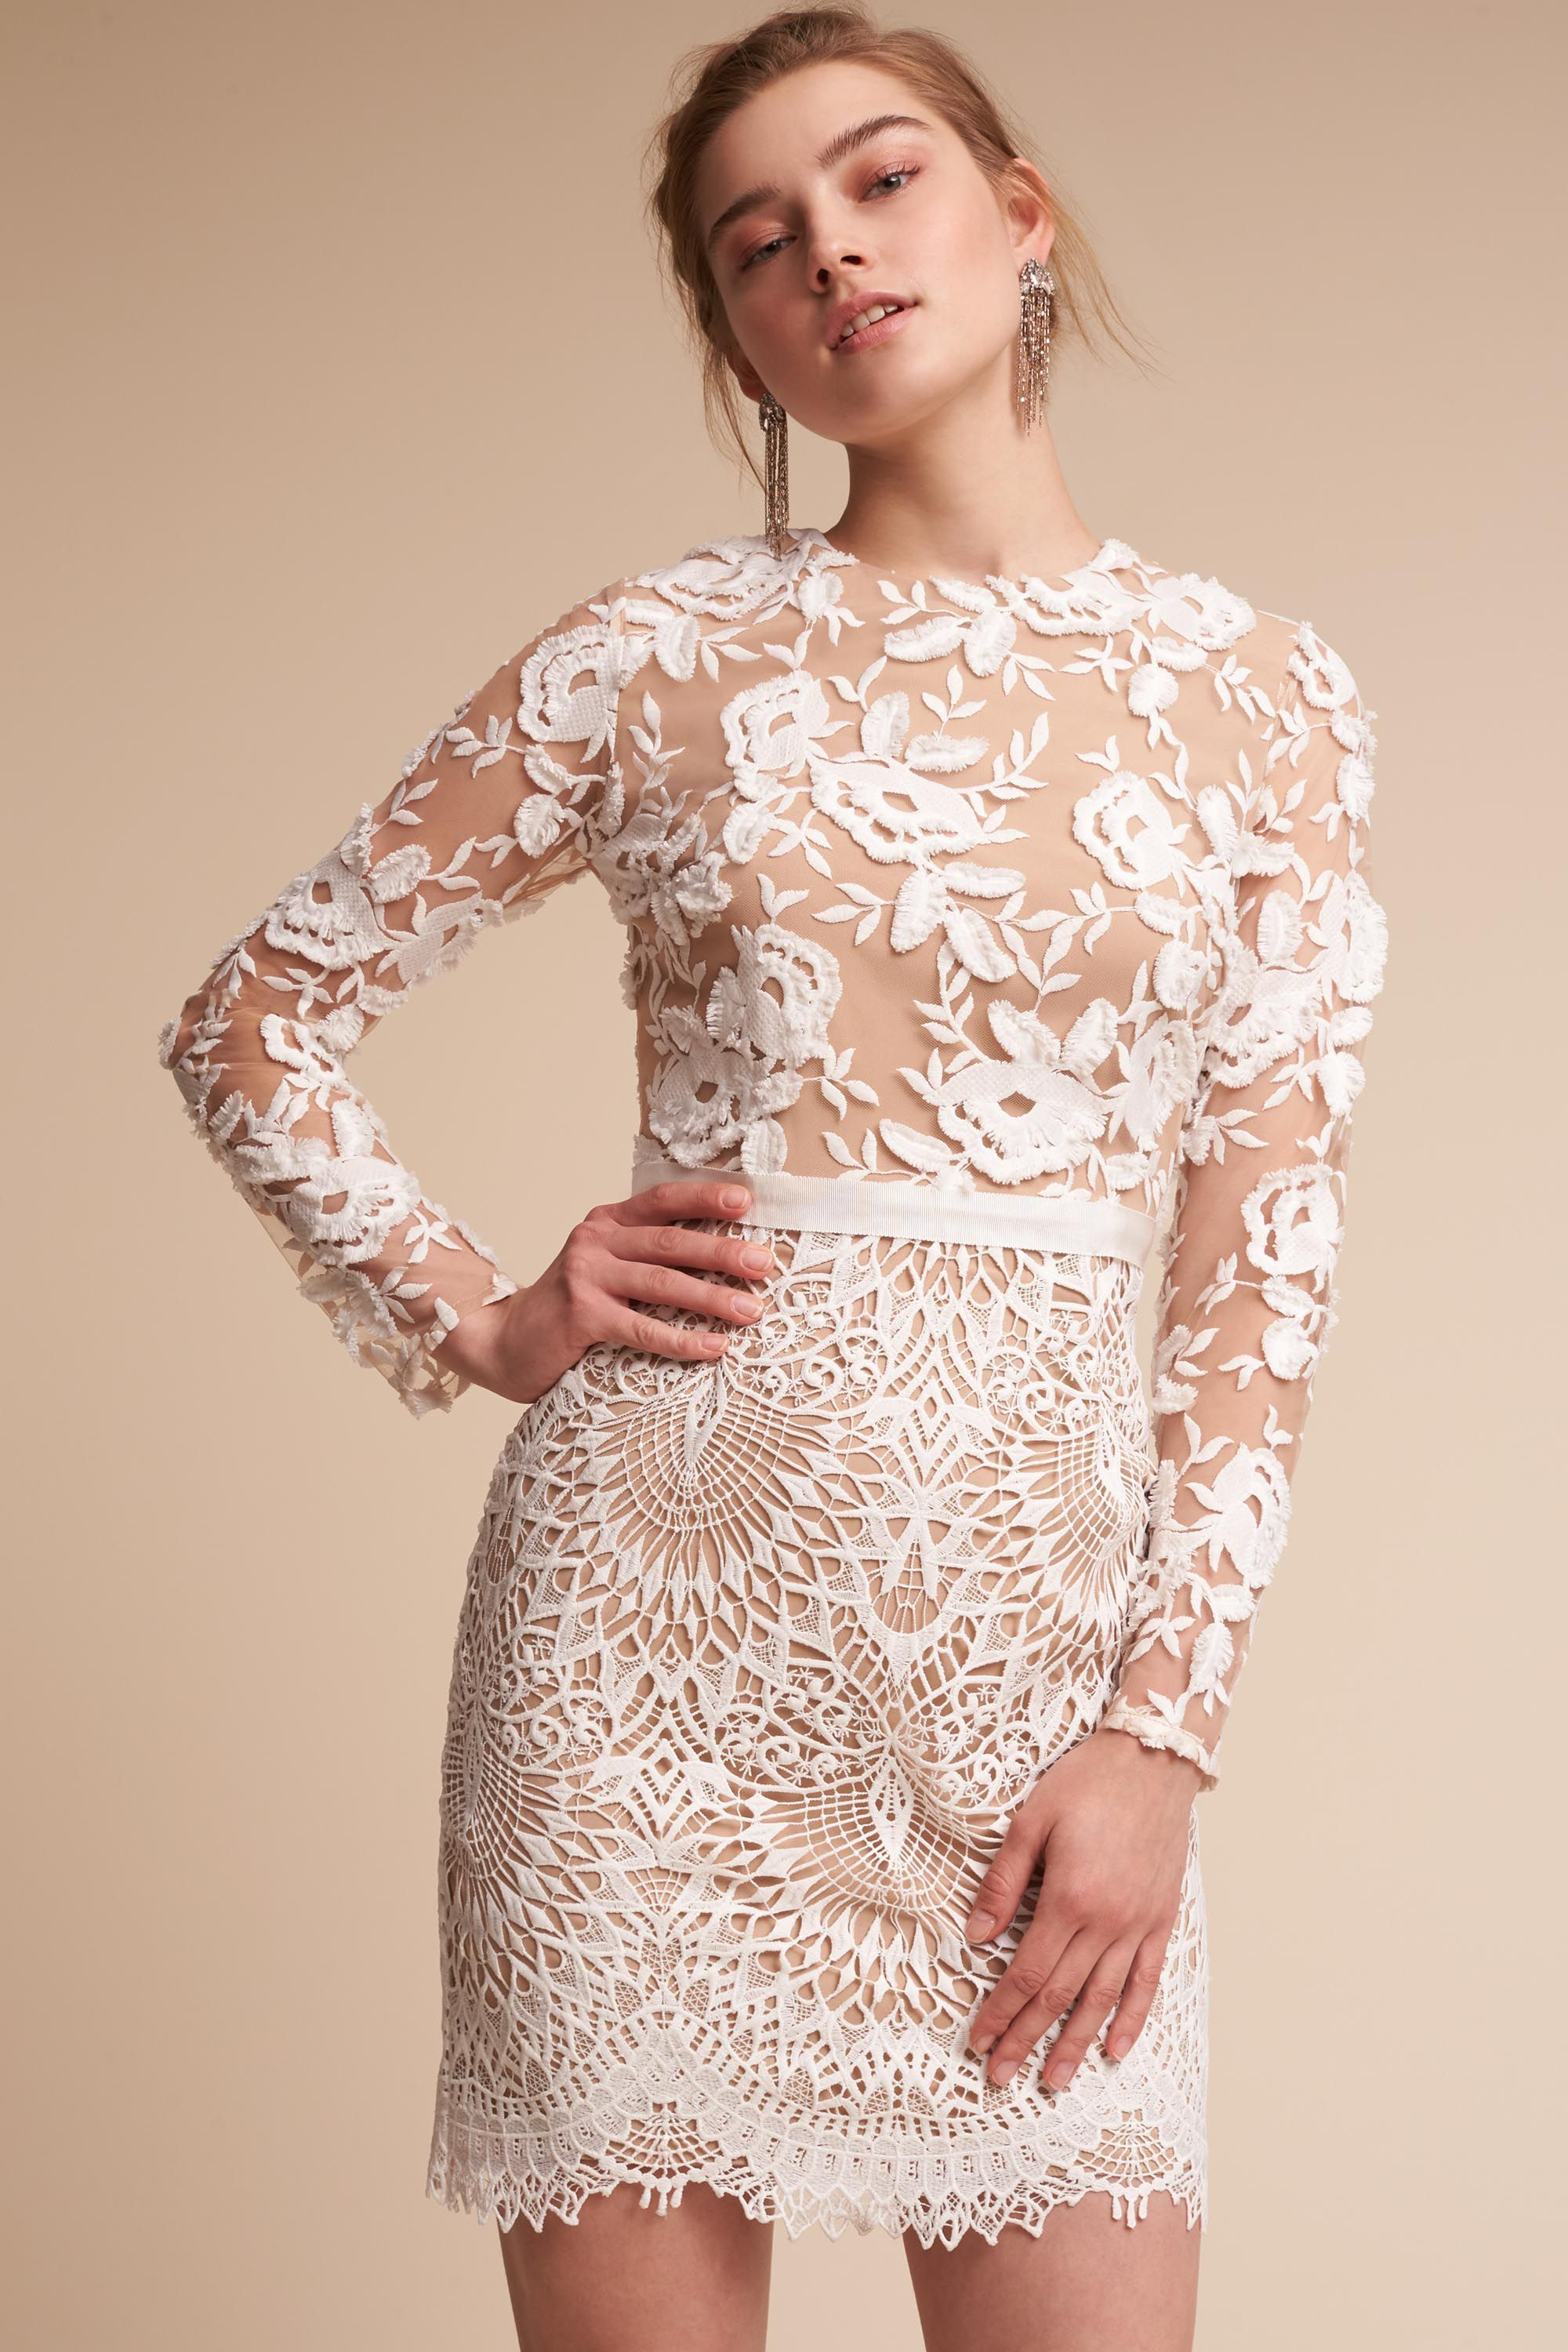 After wedding dress reception  Tiana Dress from BHLDN  Happily Ever After  Pinterest  Tiana